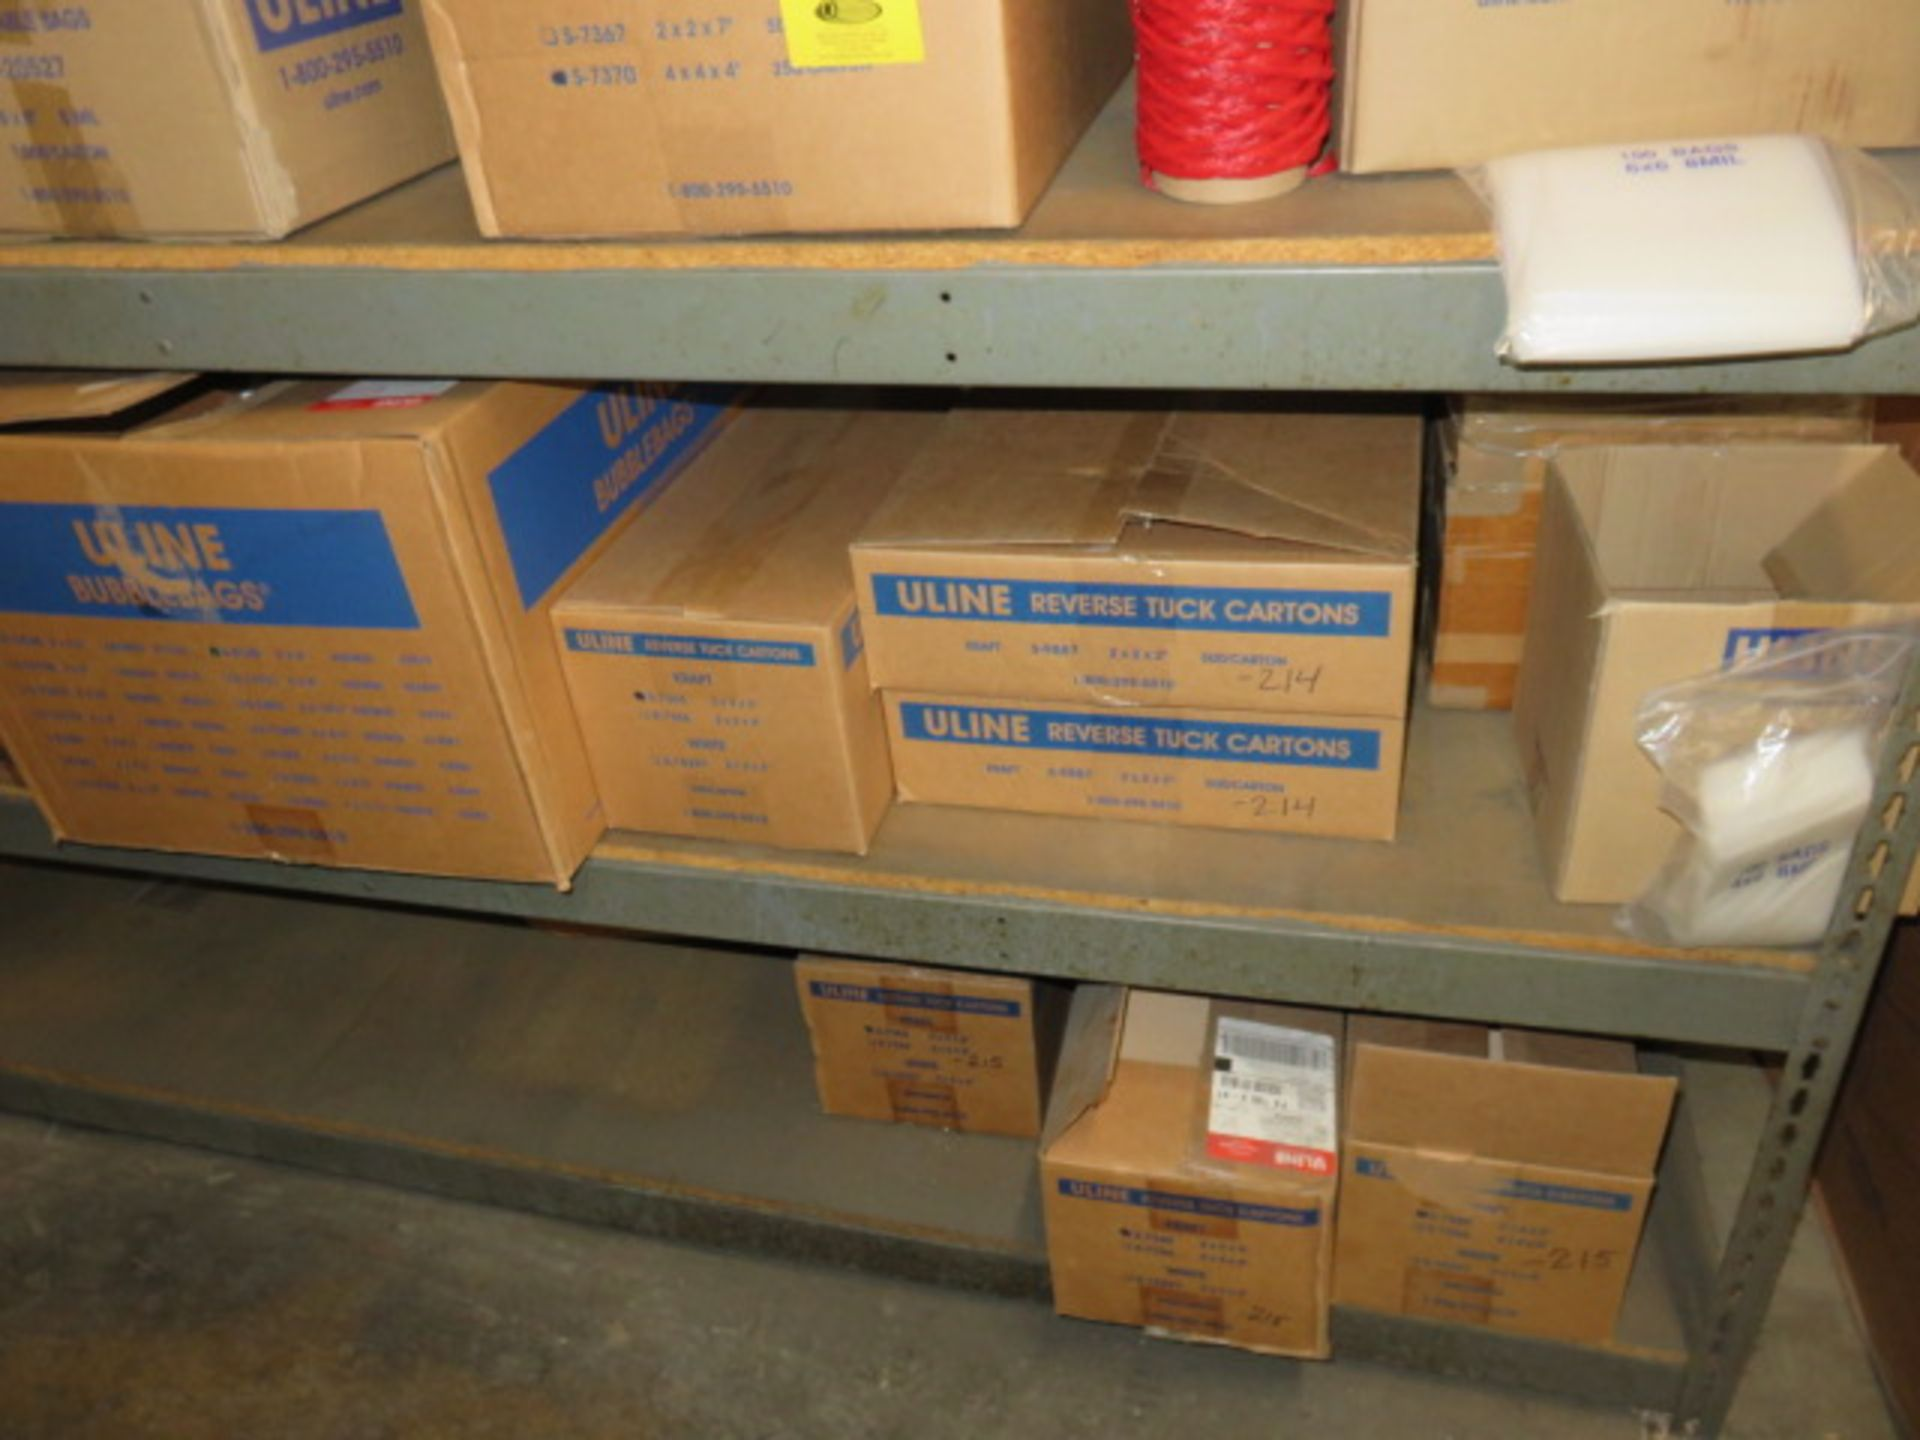 KRAFT REVERSE TUCK CARTONS, POLY & BUBBLE BAGS - Image 7 of 9